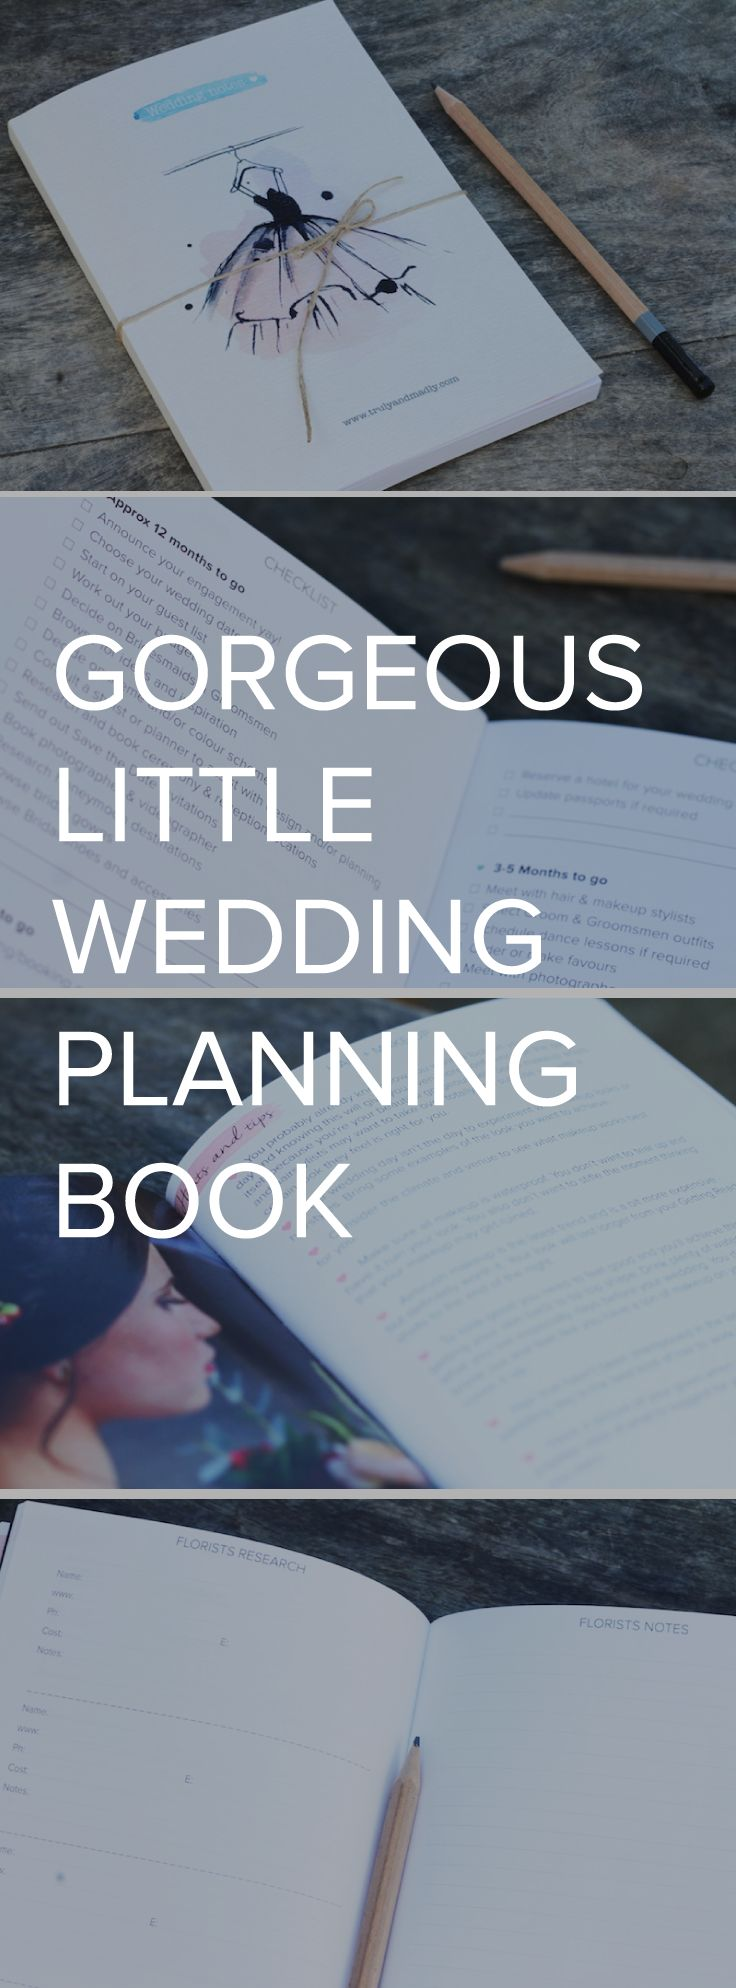 Check it out! Our very own, Truly and Madly wedding planning notebook! It's like a mini-mag + journal + wedding guide all-in-one and it's awesome! Complete with a checklist, 16 sections, hints and tips, plenty of room for all your notes and ideas, detailed worksheets and splashes of pretty to inspire you. Plus it's the perfect size to pop in your handbag so you can carry it with you from one appointment to another!  https://www.etsy.com/nz/listing/208463123/wedding-planning-notebook